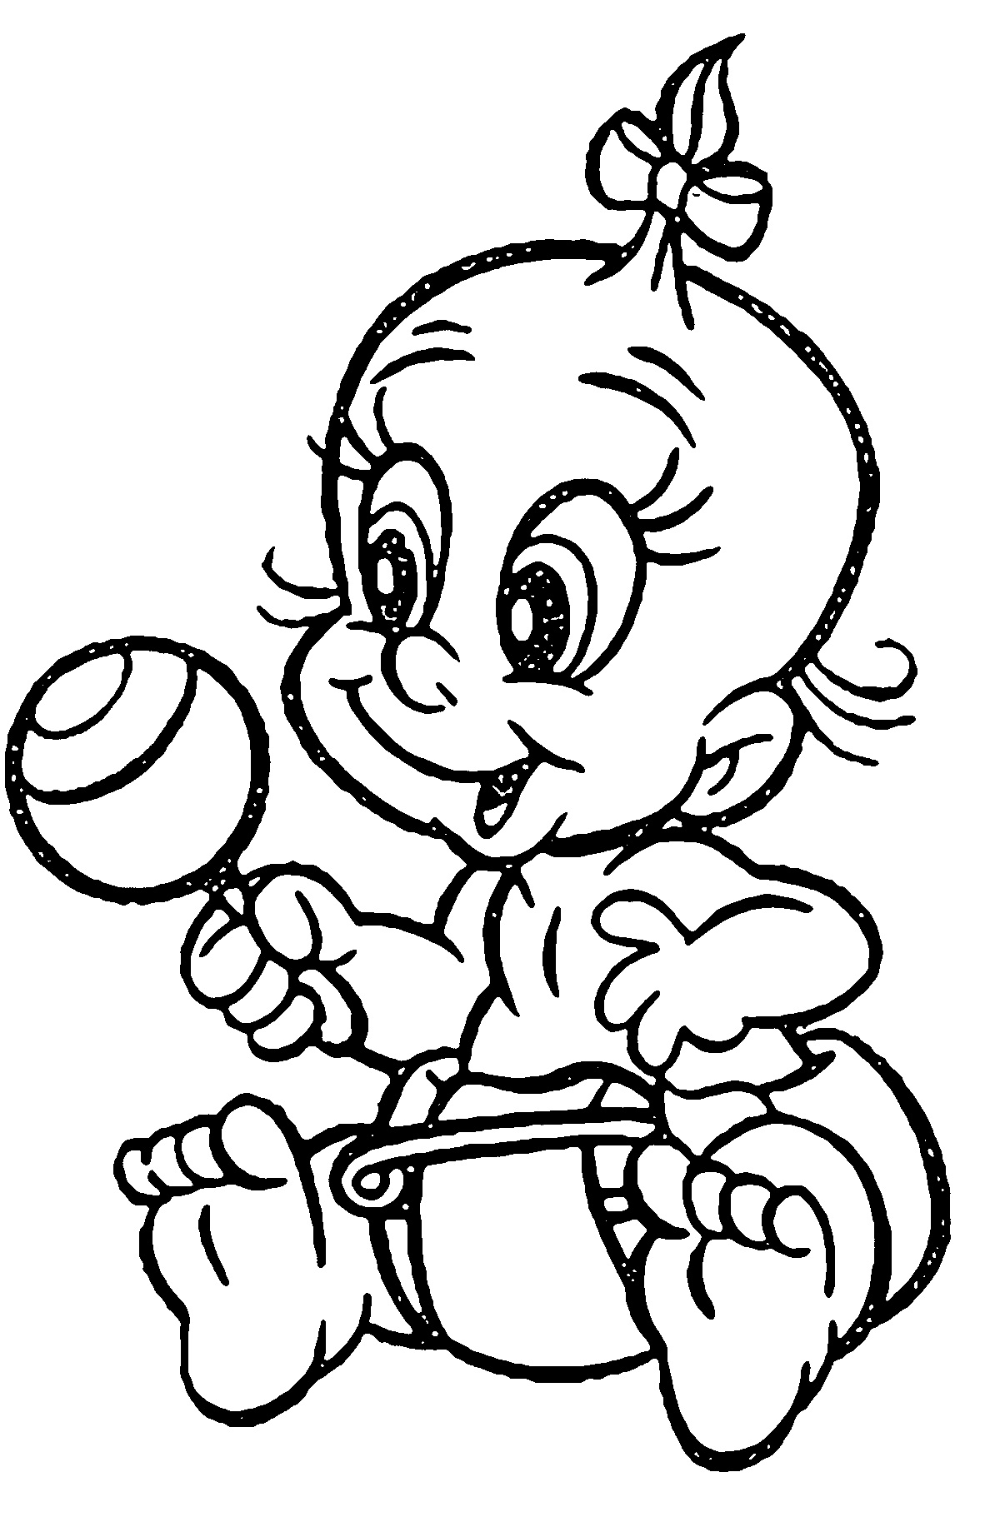 Baby Alive Coloring Pages Printable Coloring Pages Baby Alive Drawing Activities